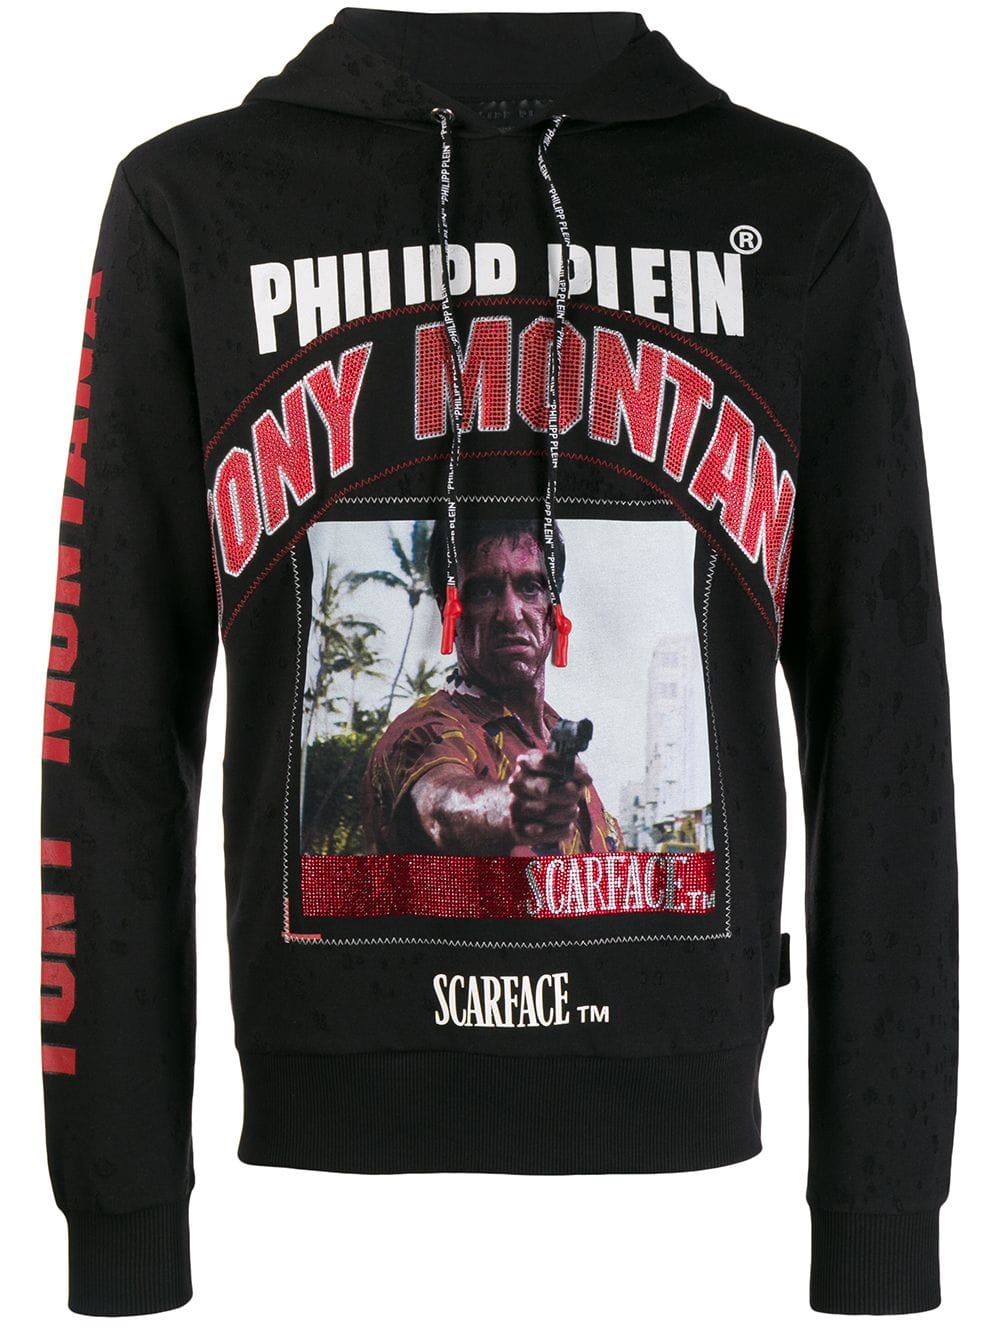 Pin By Luh Honeyy On Quick Saves In 2021 Hoodies Black Hoodie Scarface [ 1334 x 1000 Pixel ]